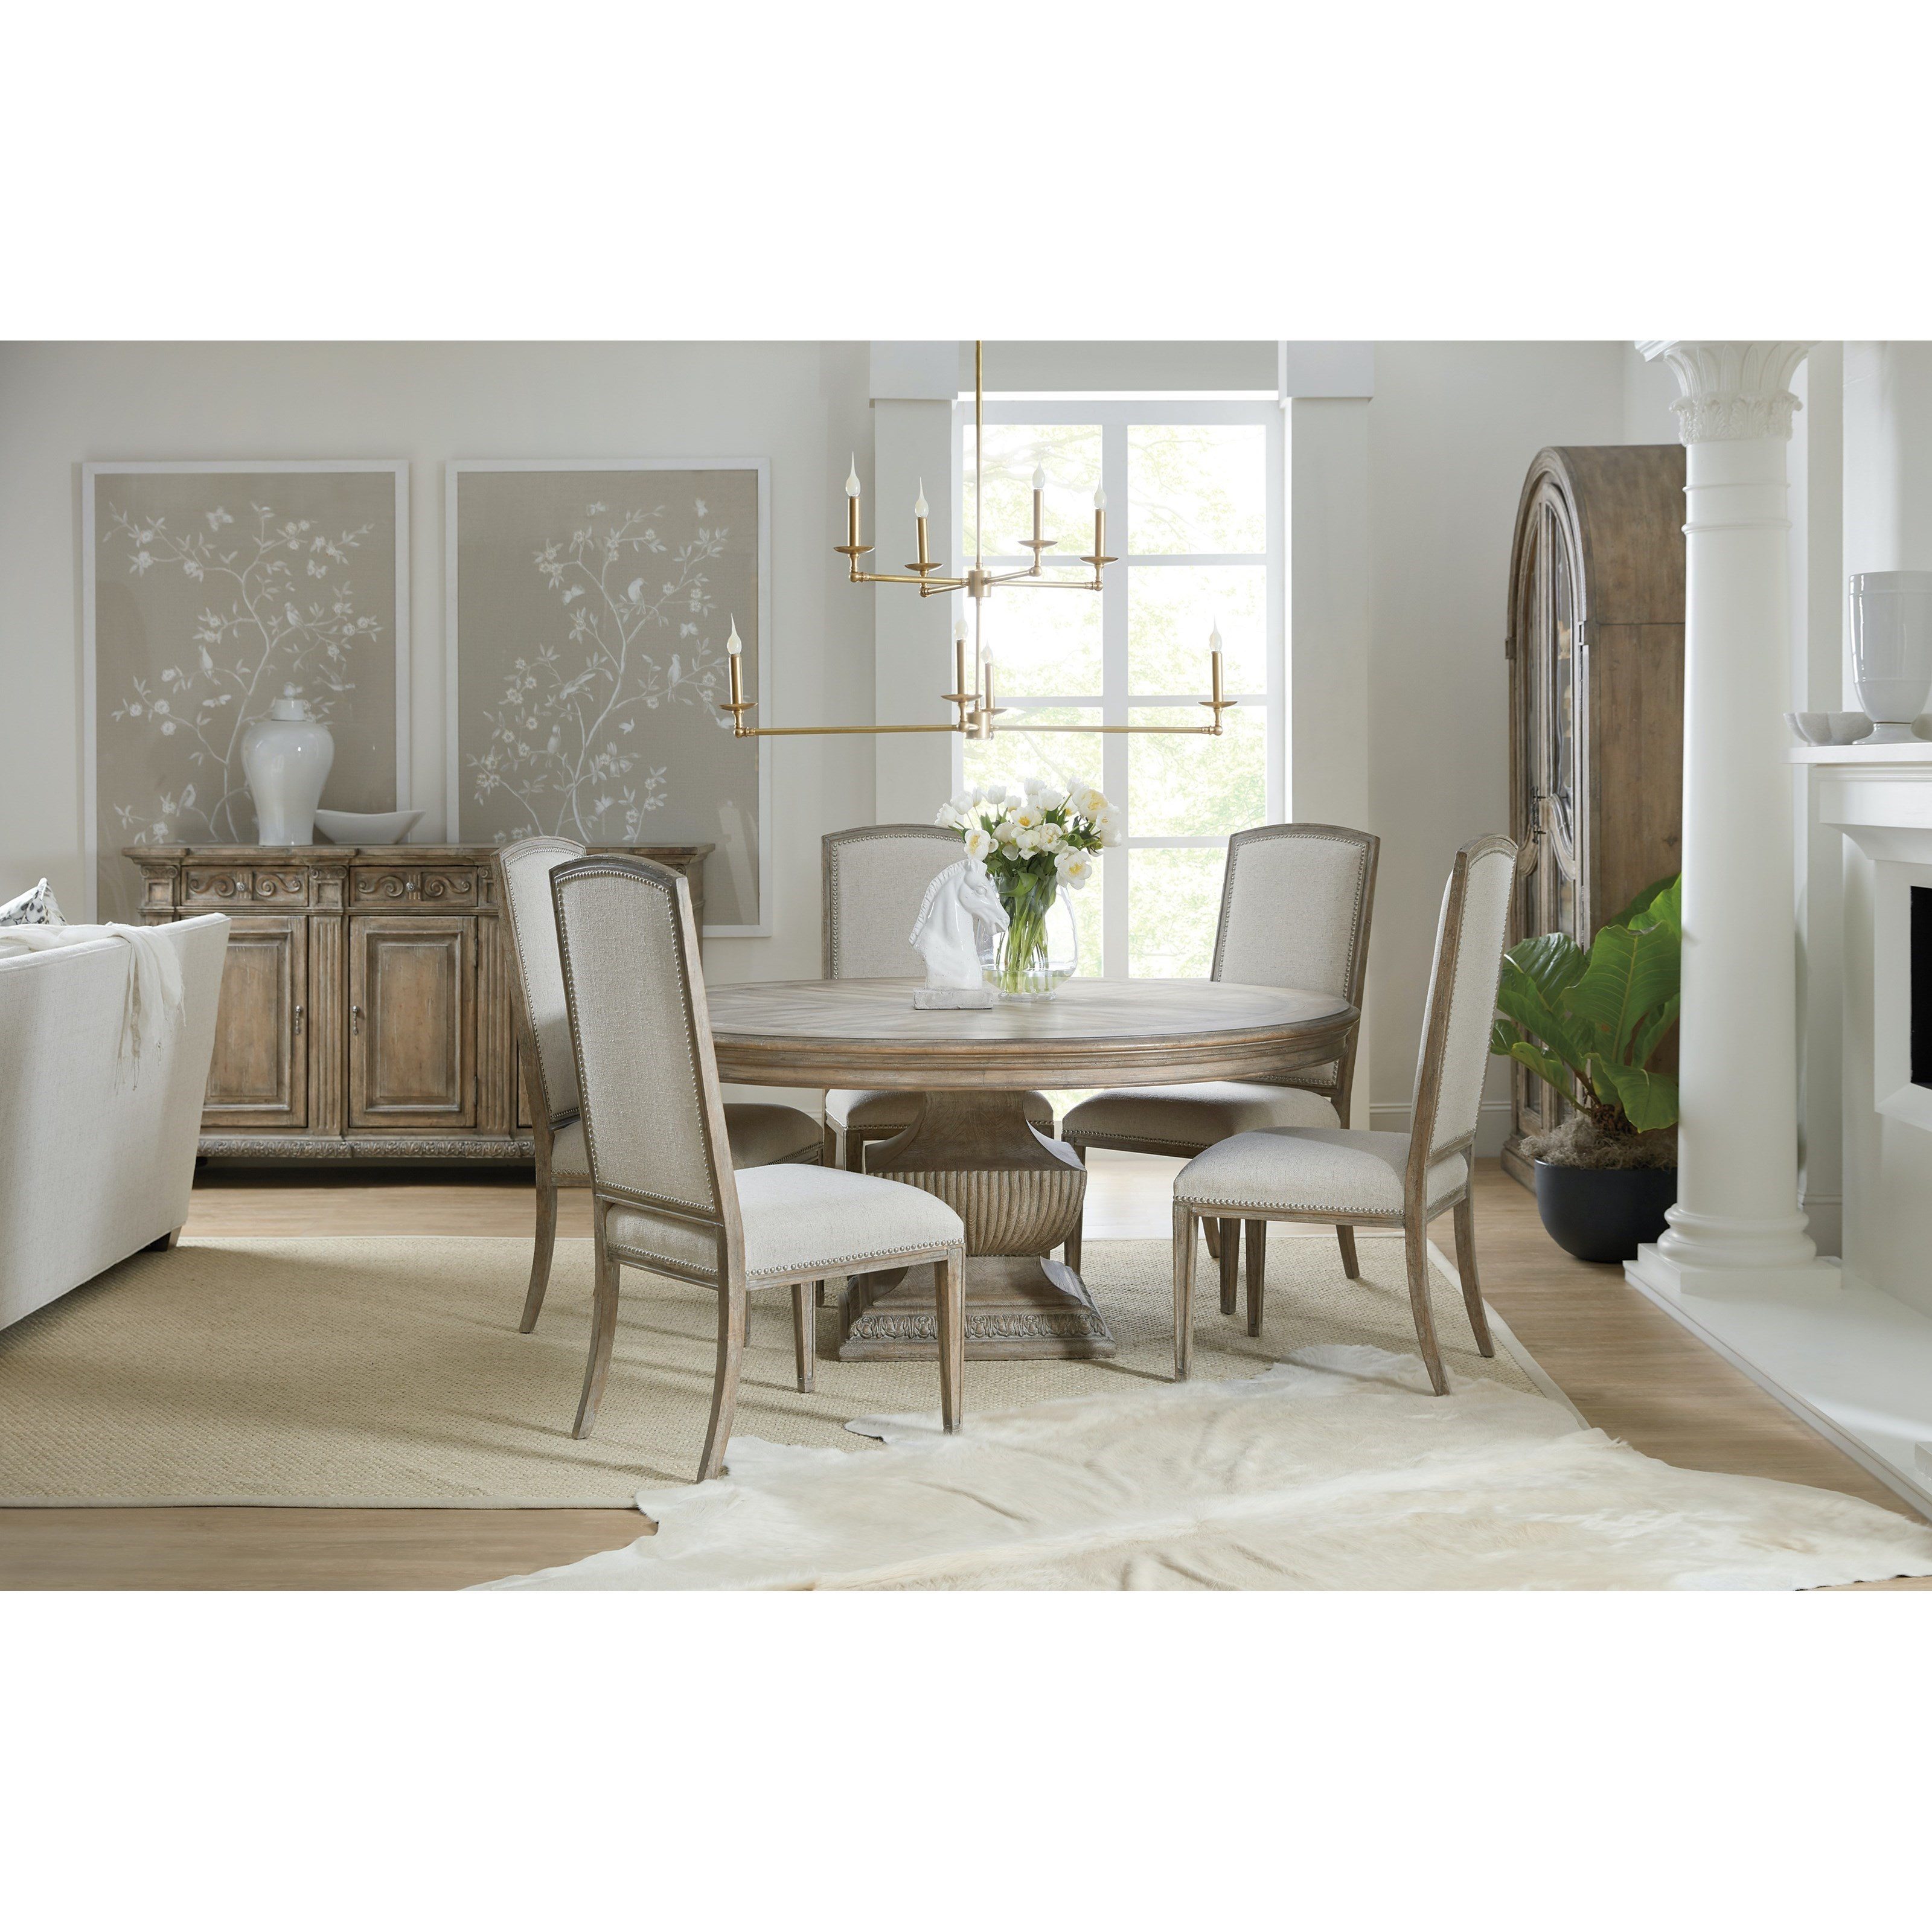 Castella Formal Dining Room Group by Hooker Furniture at Baer's Furniture